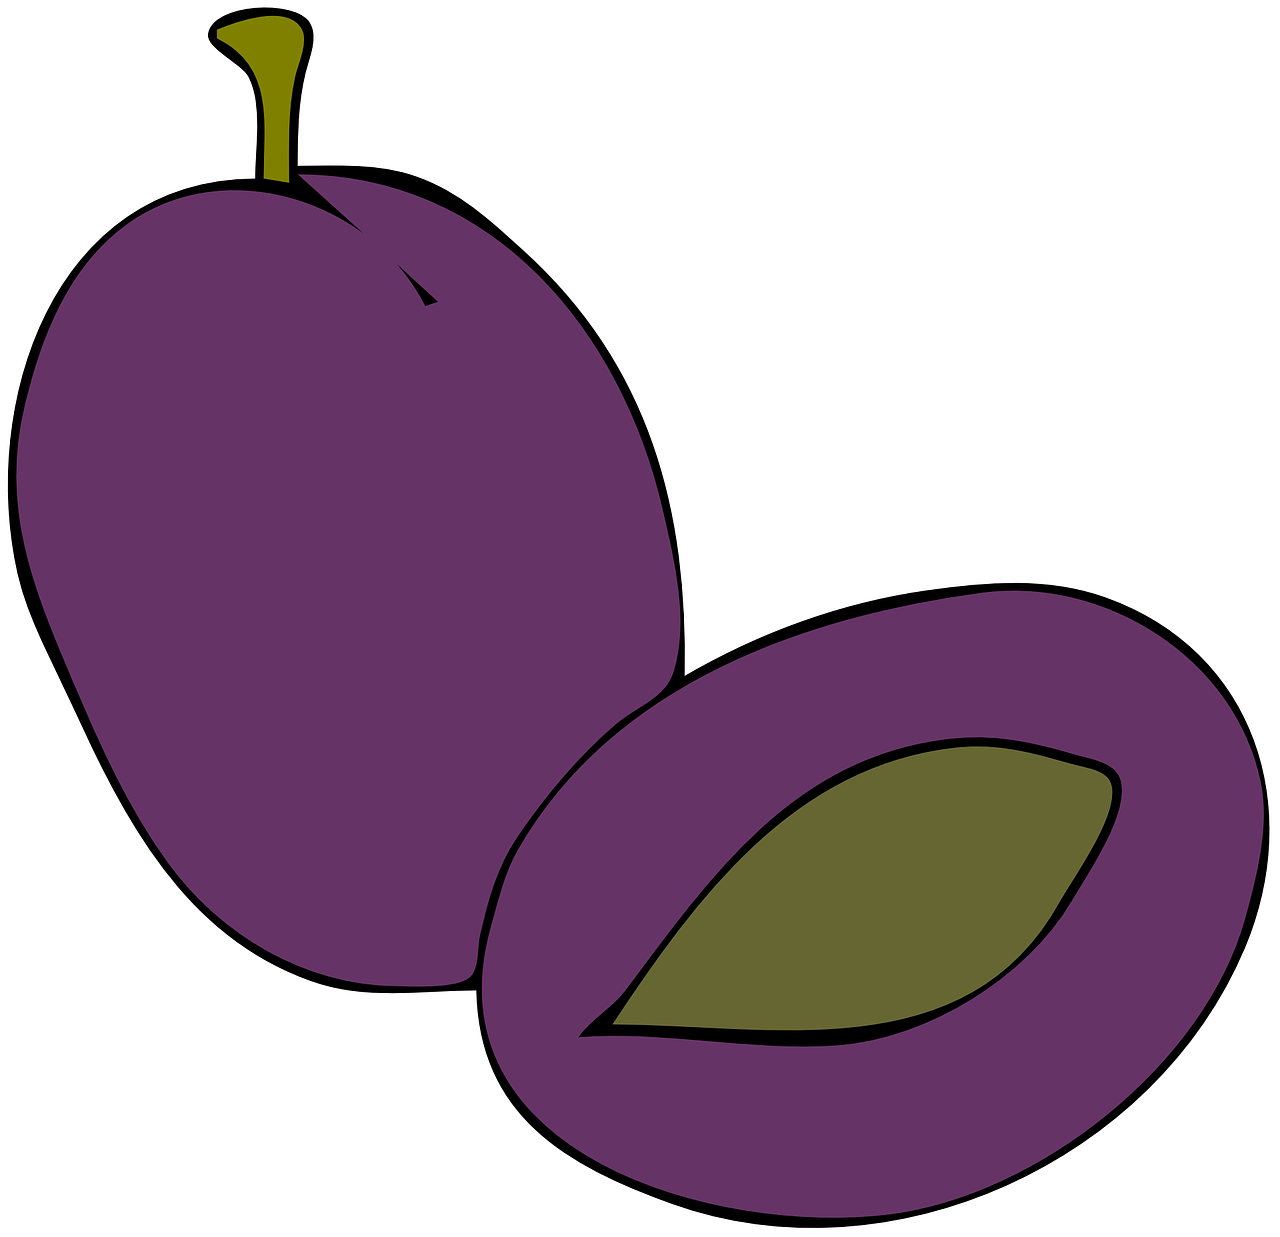 plum purple fruit free photo